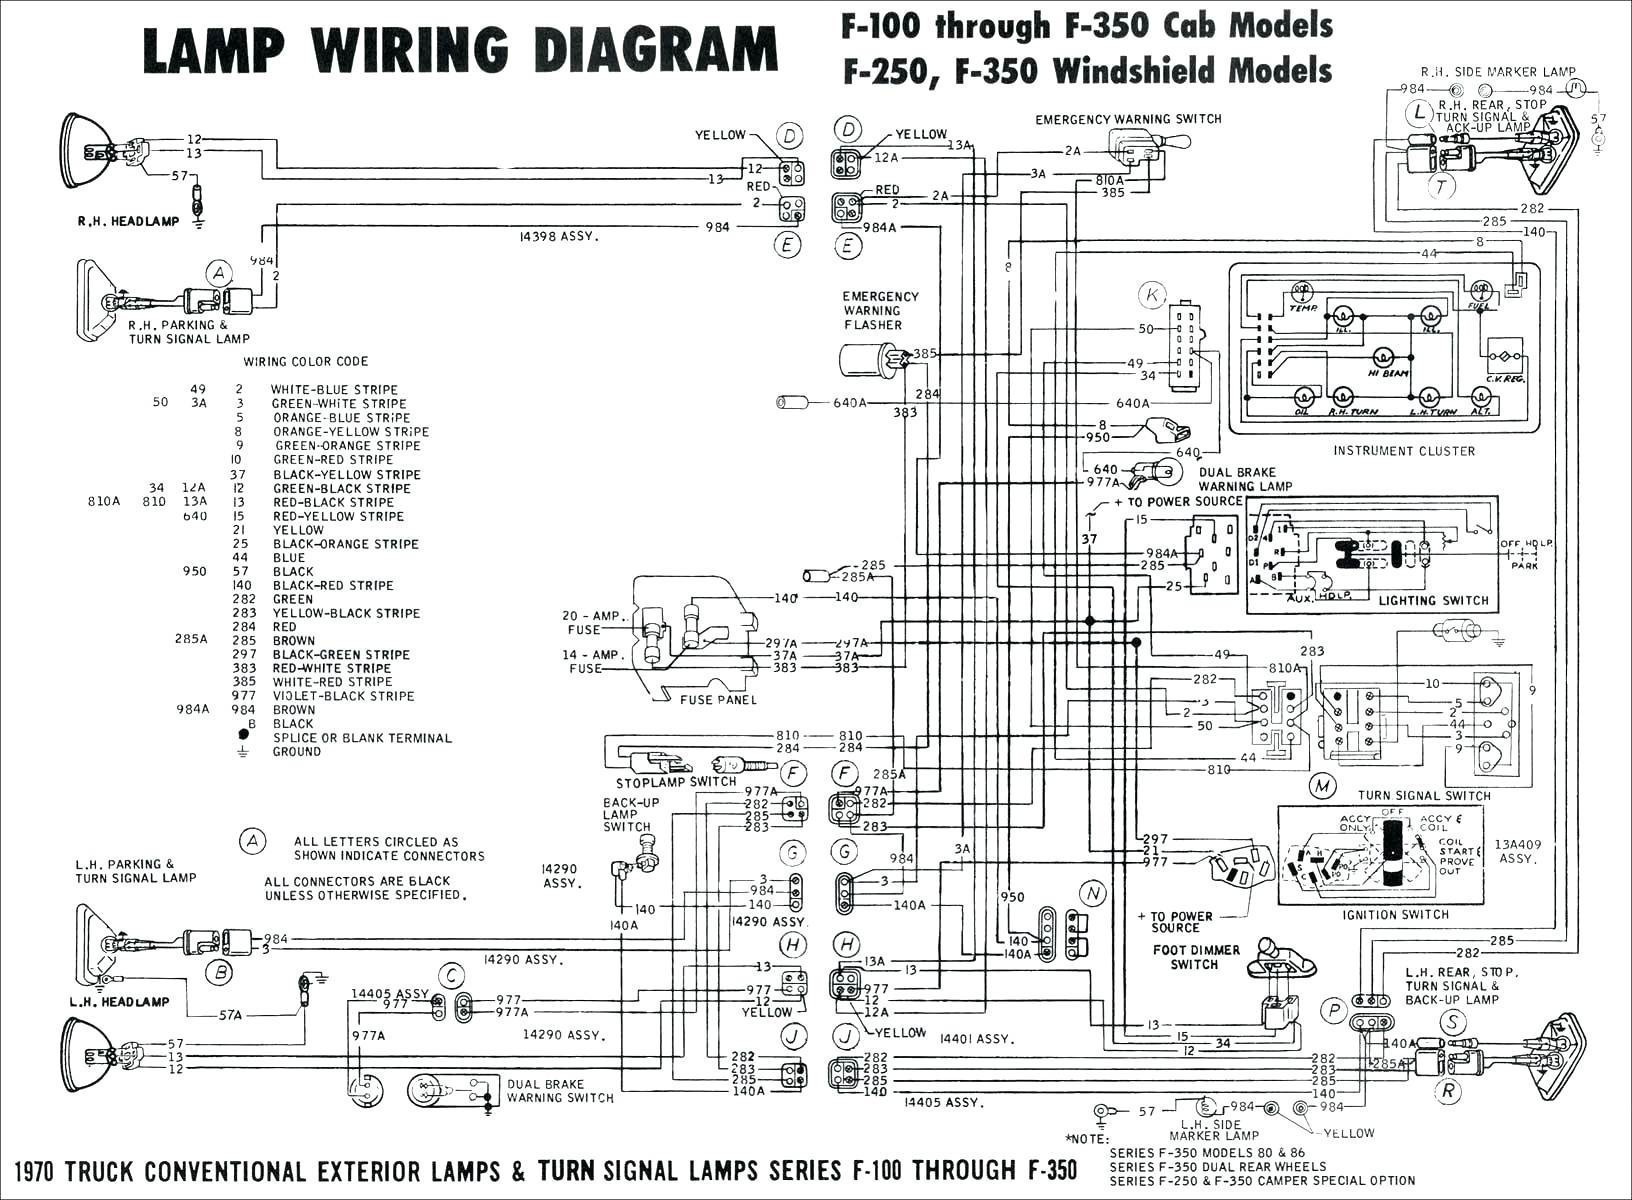 2002 Jeep Grand Cherokee Engine Diagram 2 Basic Ignition System Wiring Diagram New 2002 Jeep Grand Cherokee Of 2002 Jeep Grand Cherokee Engine Diagram 2 Wiring Diagram Jeep Grand Cherokee Laredo Fresh Jeep Cherokee Pcm